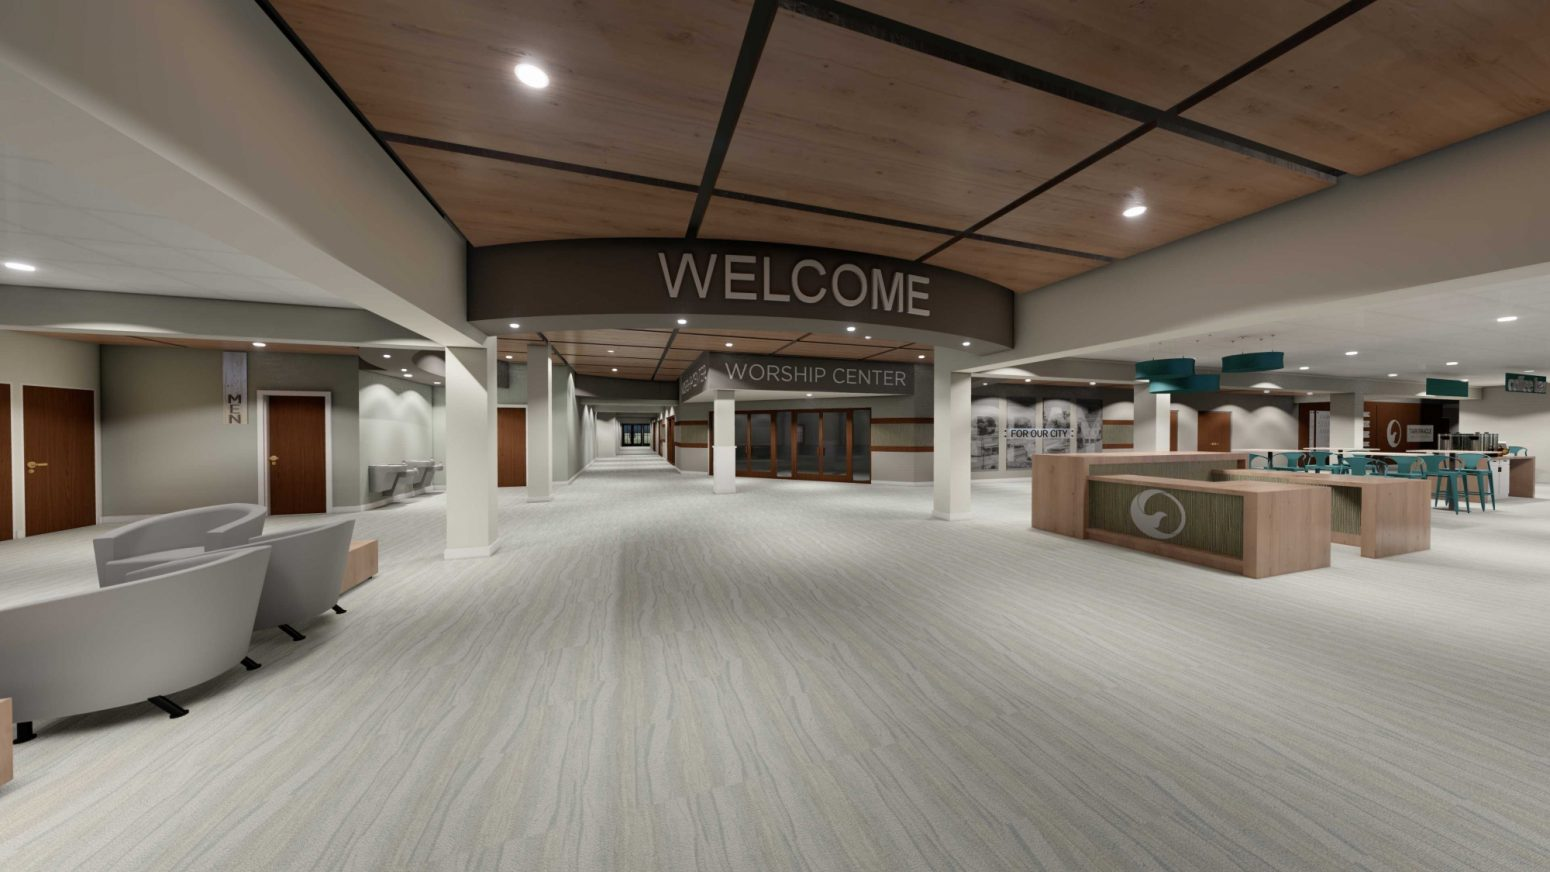 Auditorium design project featuring a spacious Welcome center.